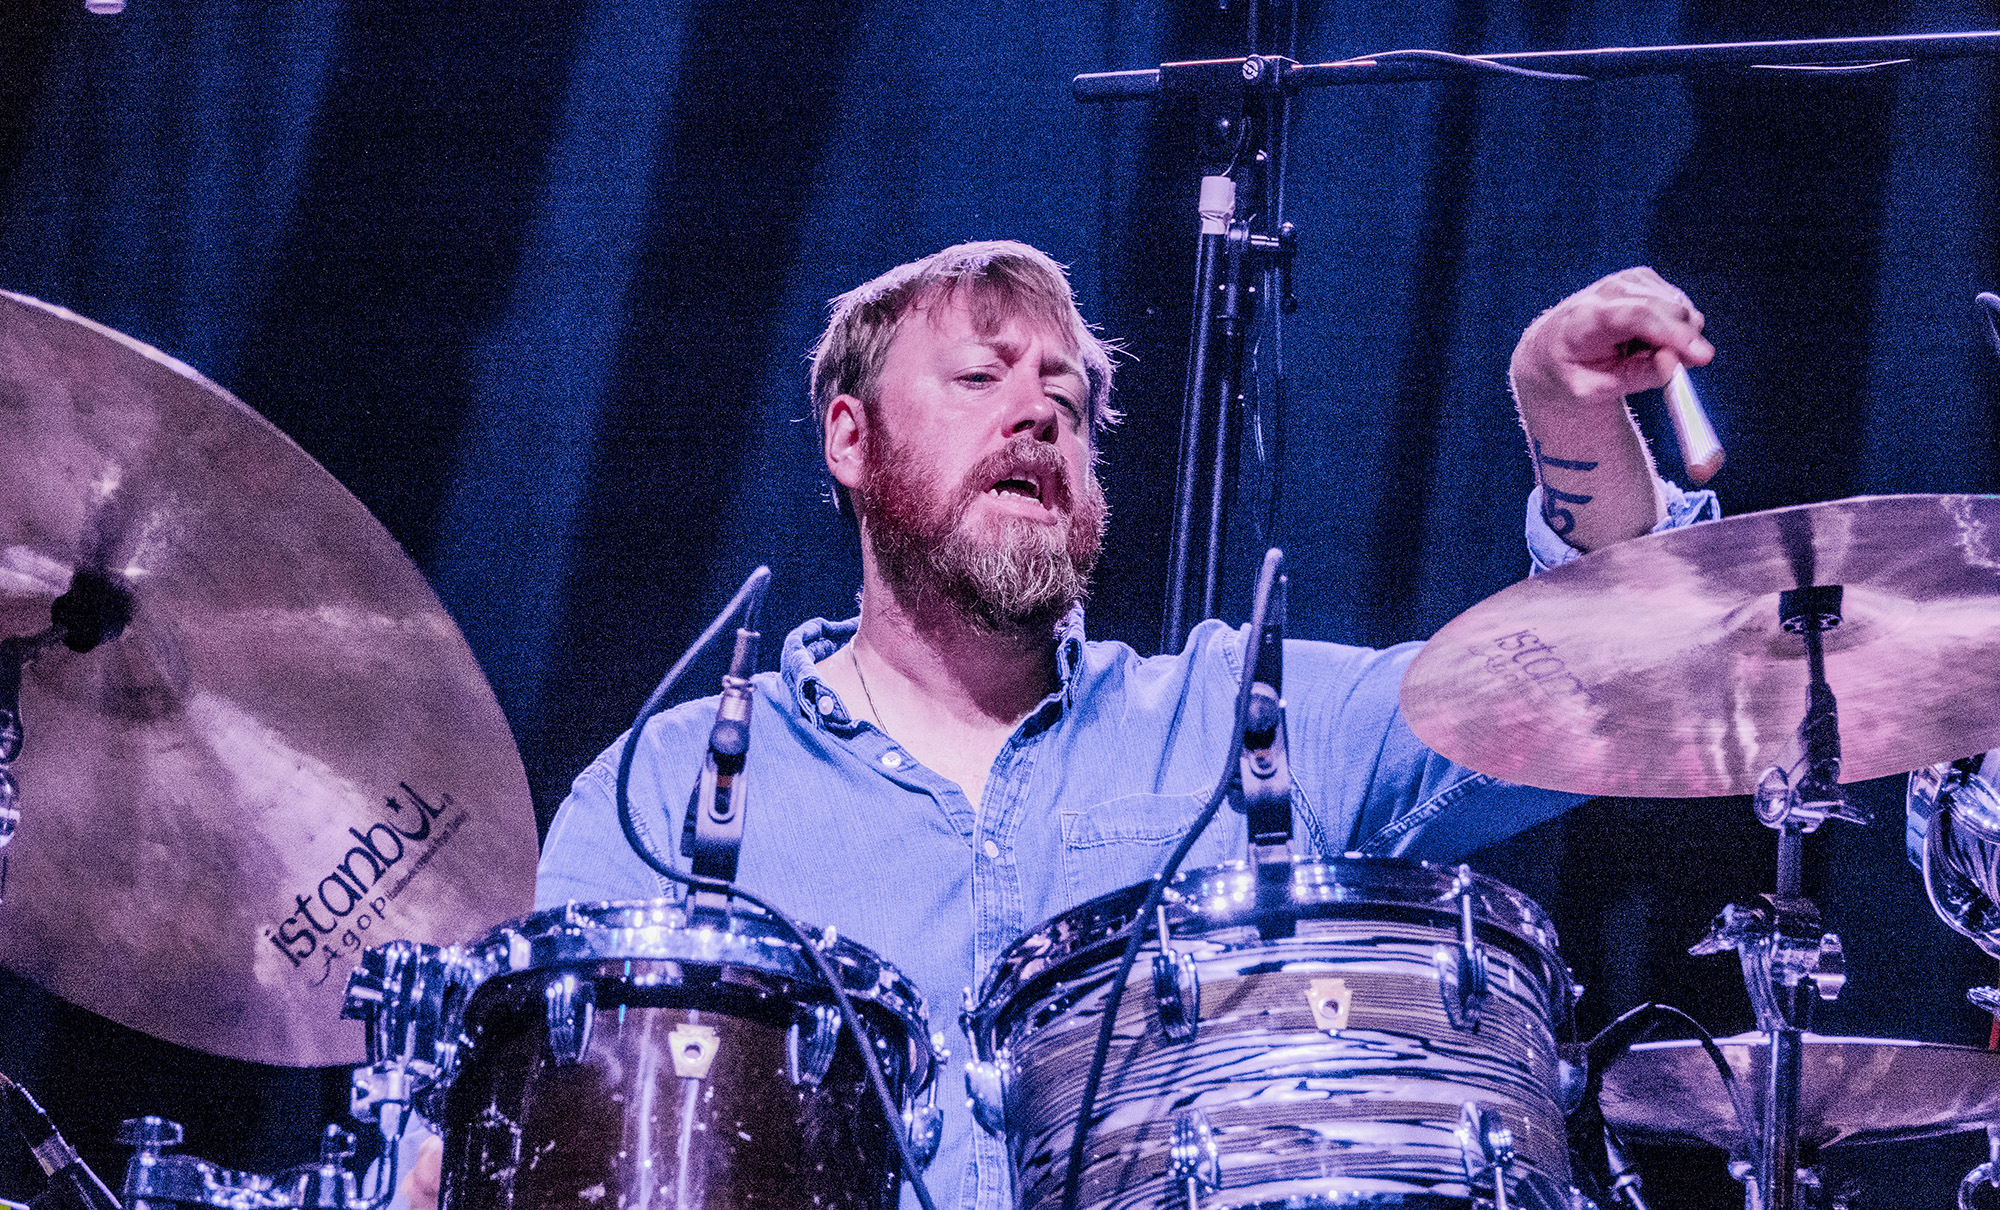 Joe Russo's Almost Dead Shares 2020 Tour Dates